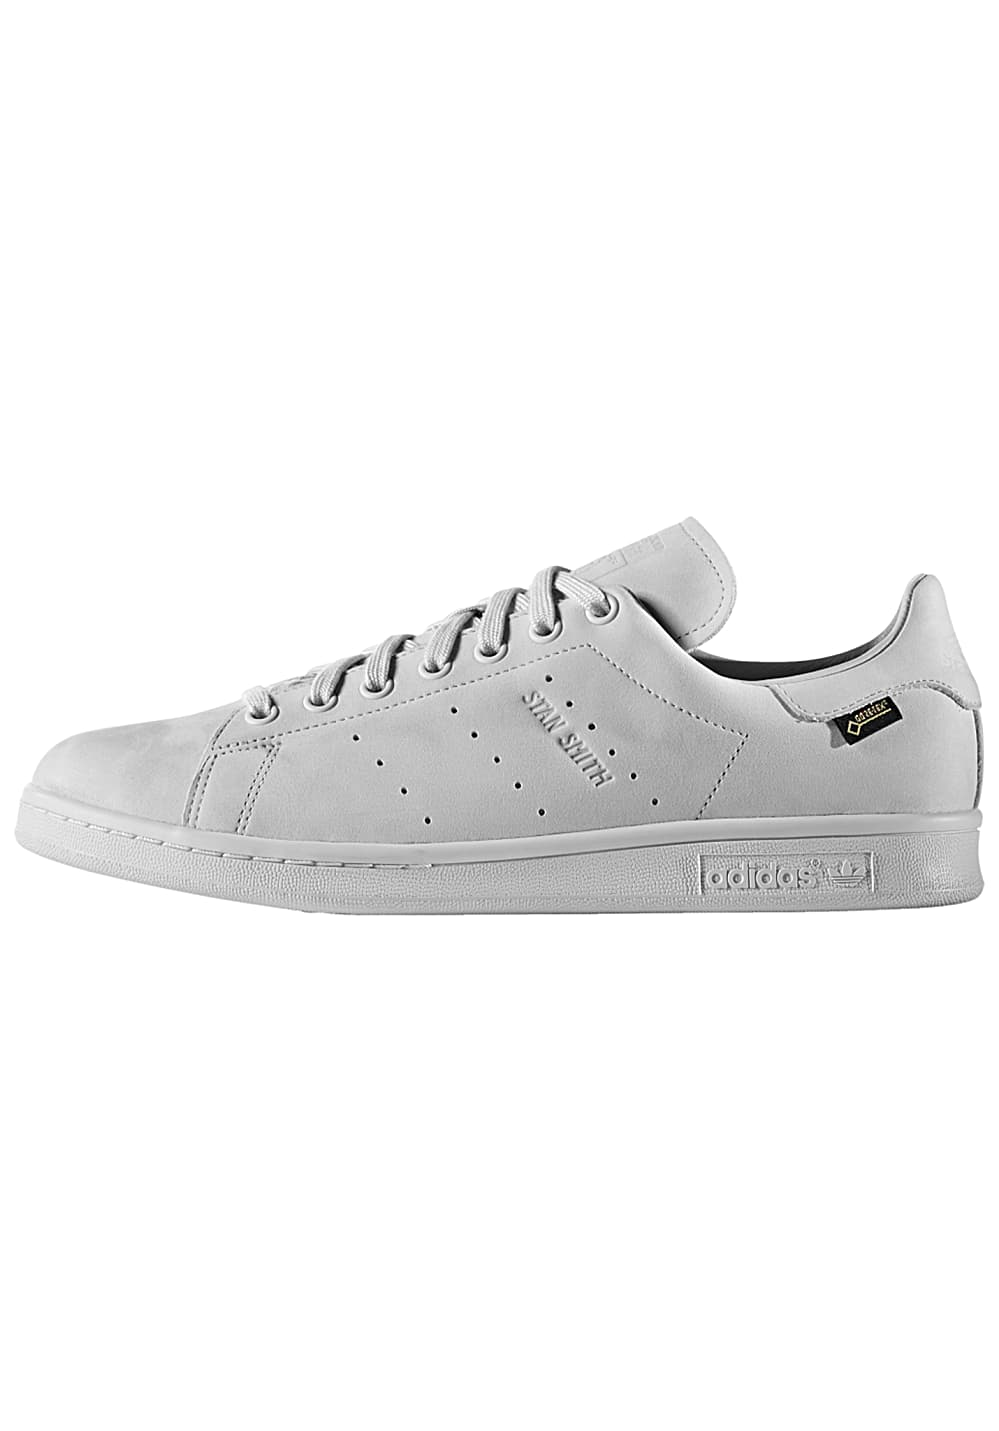 newest size 40 lower price with ADIDAS ORIGINALS Stan Smith GTX - Sneakers for Men - Grey